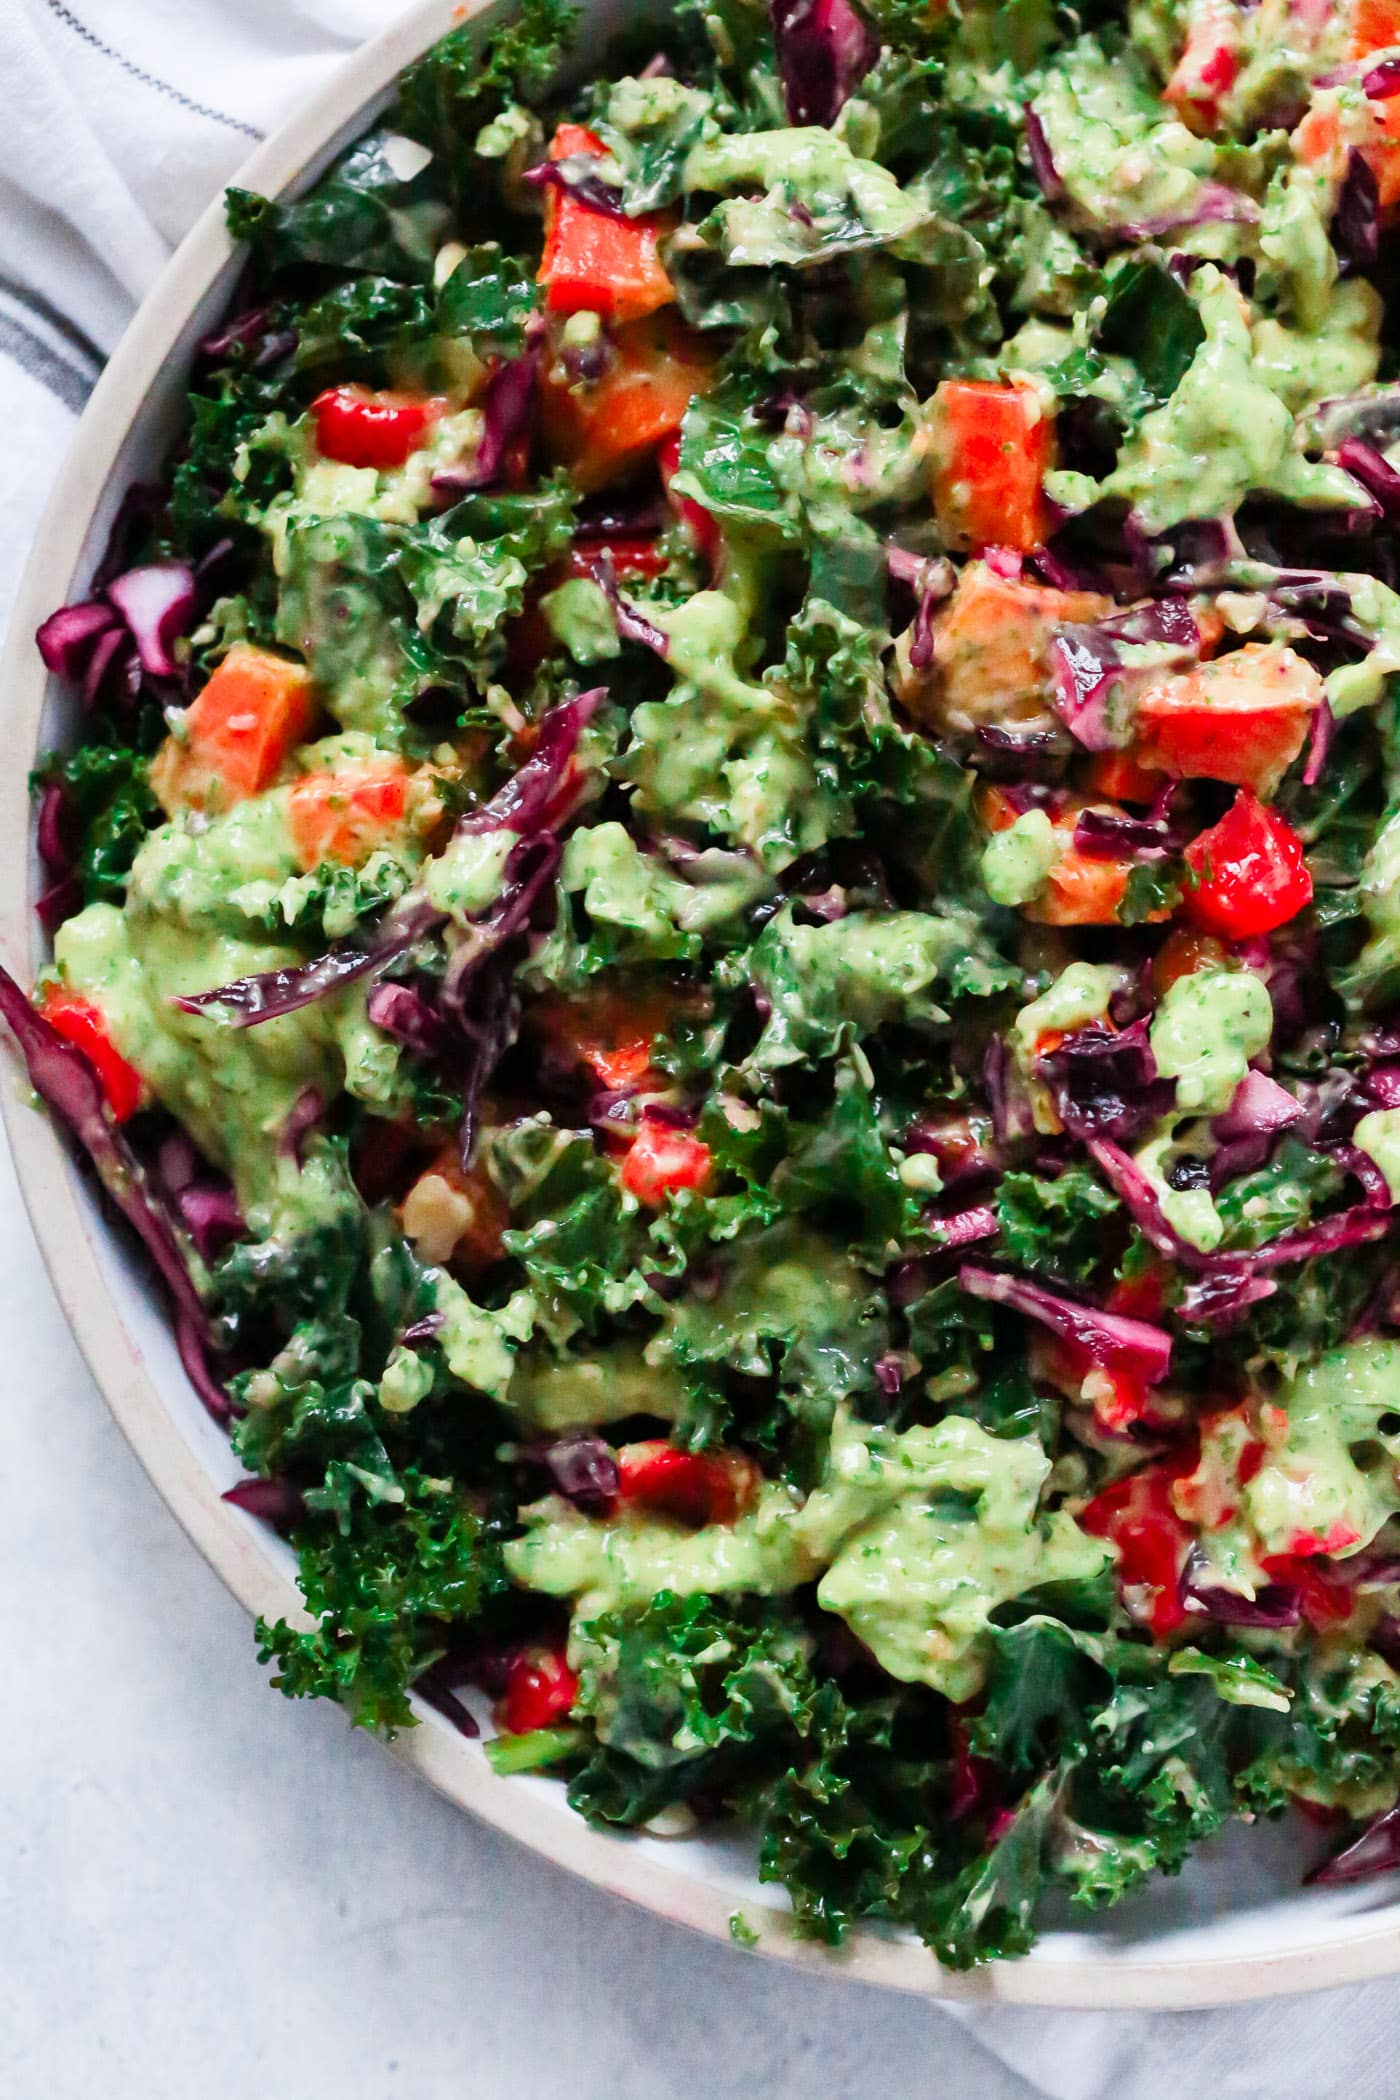 Overhead photo of a large bowl of kale salad with avocado dressing.